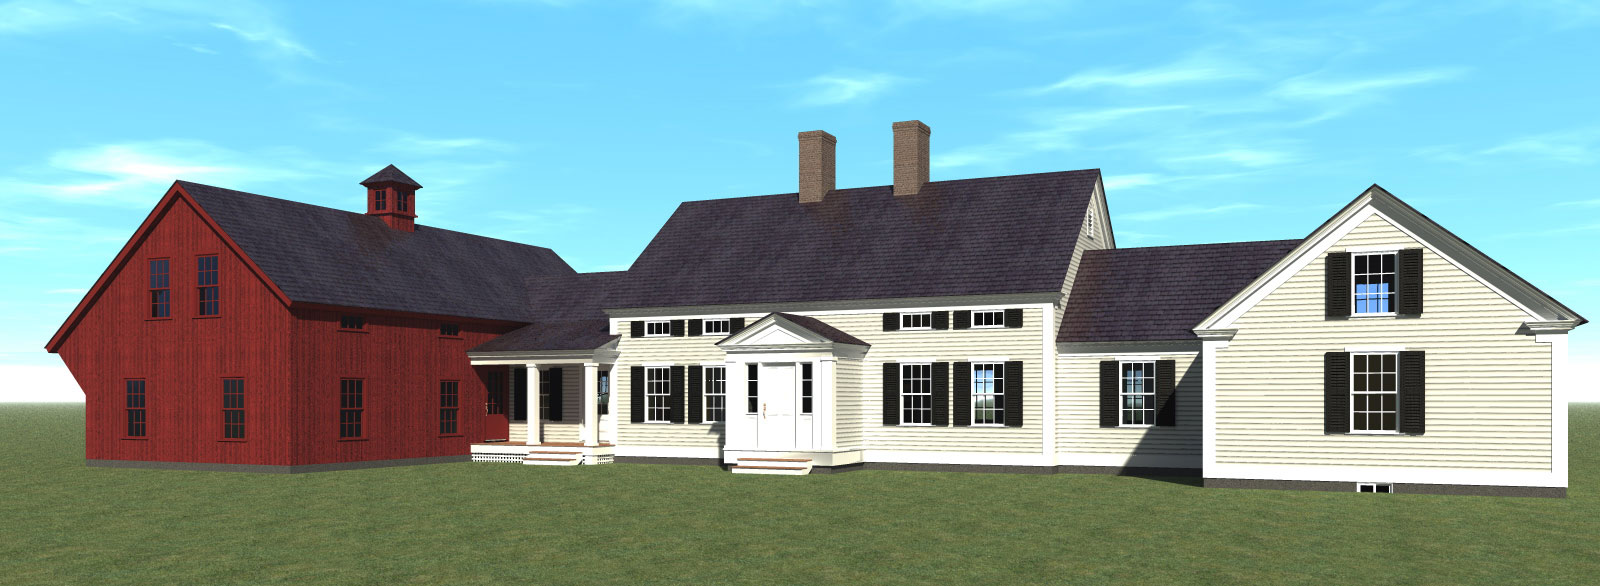 Home ideas for Modern new england home plans